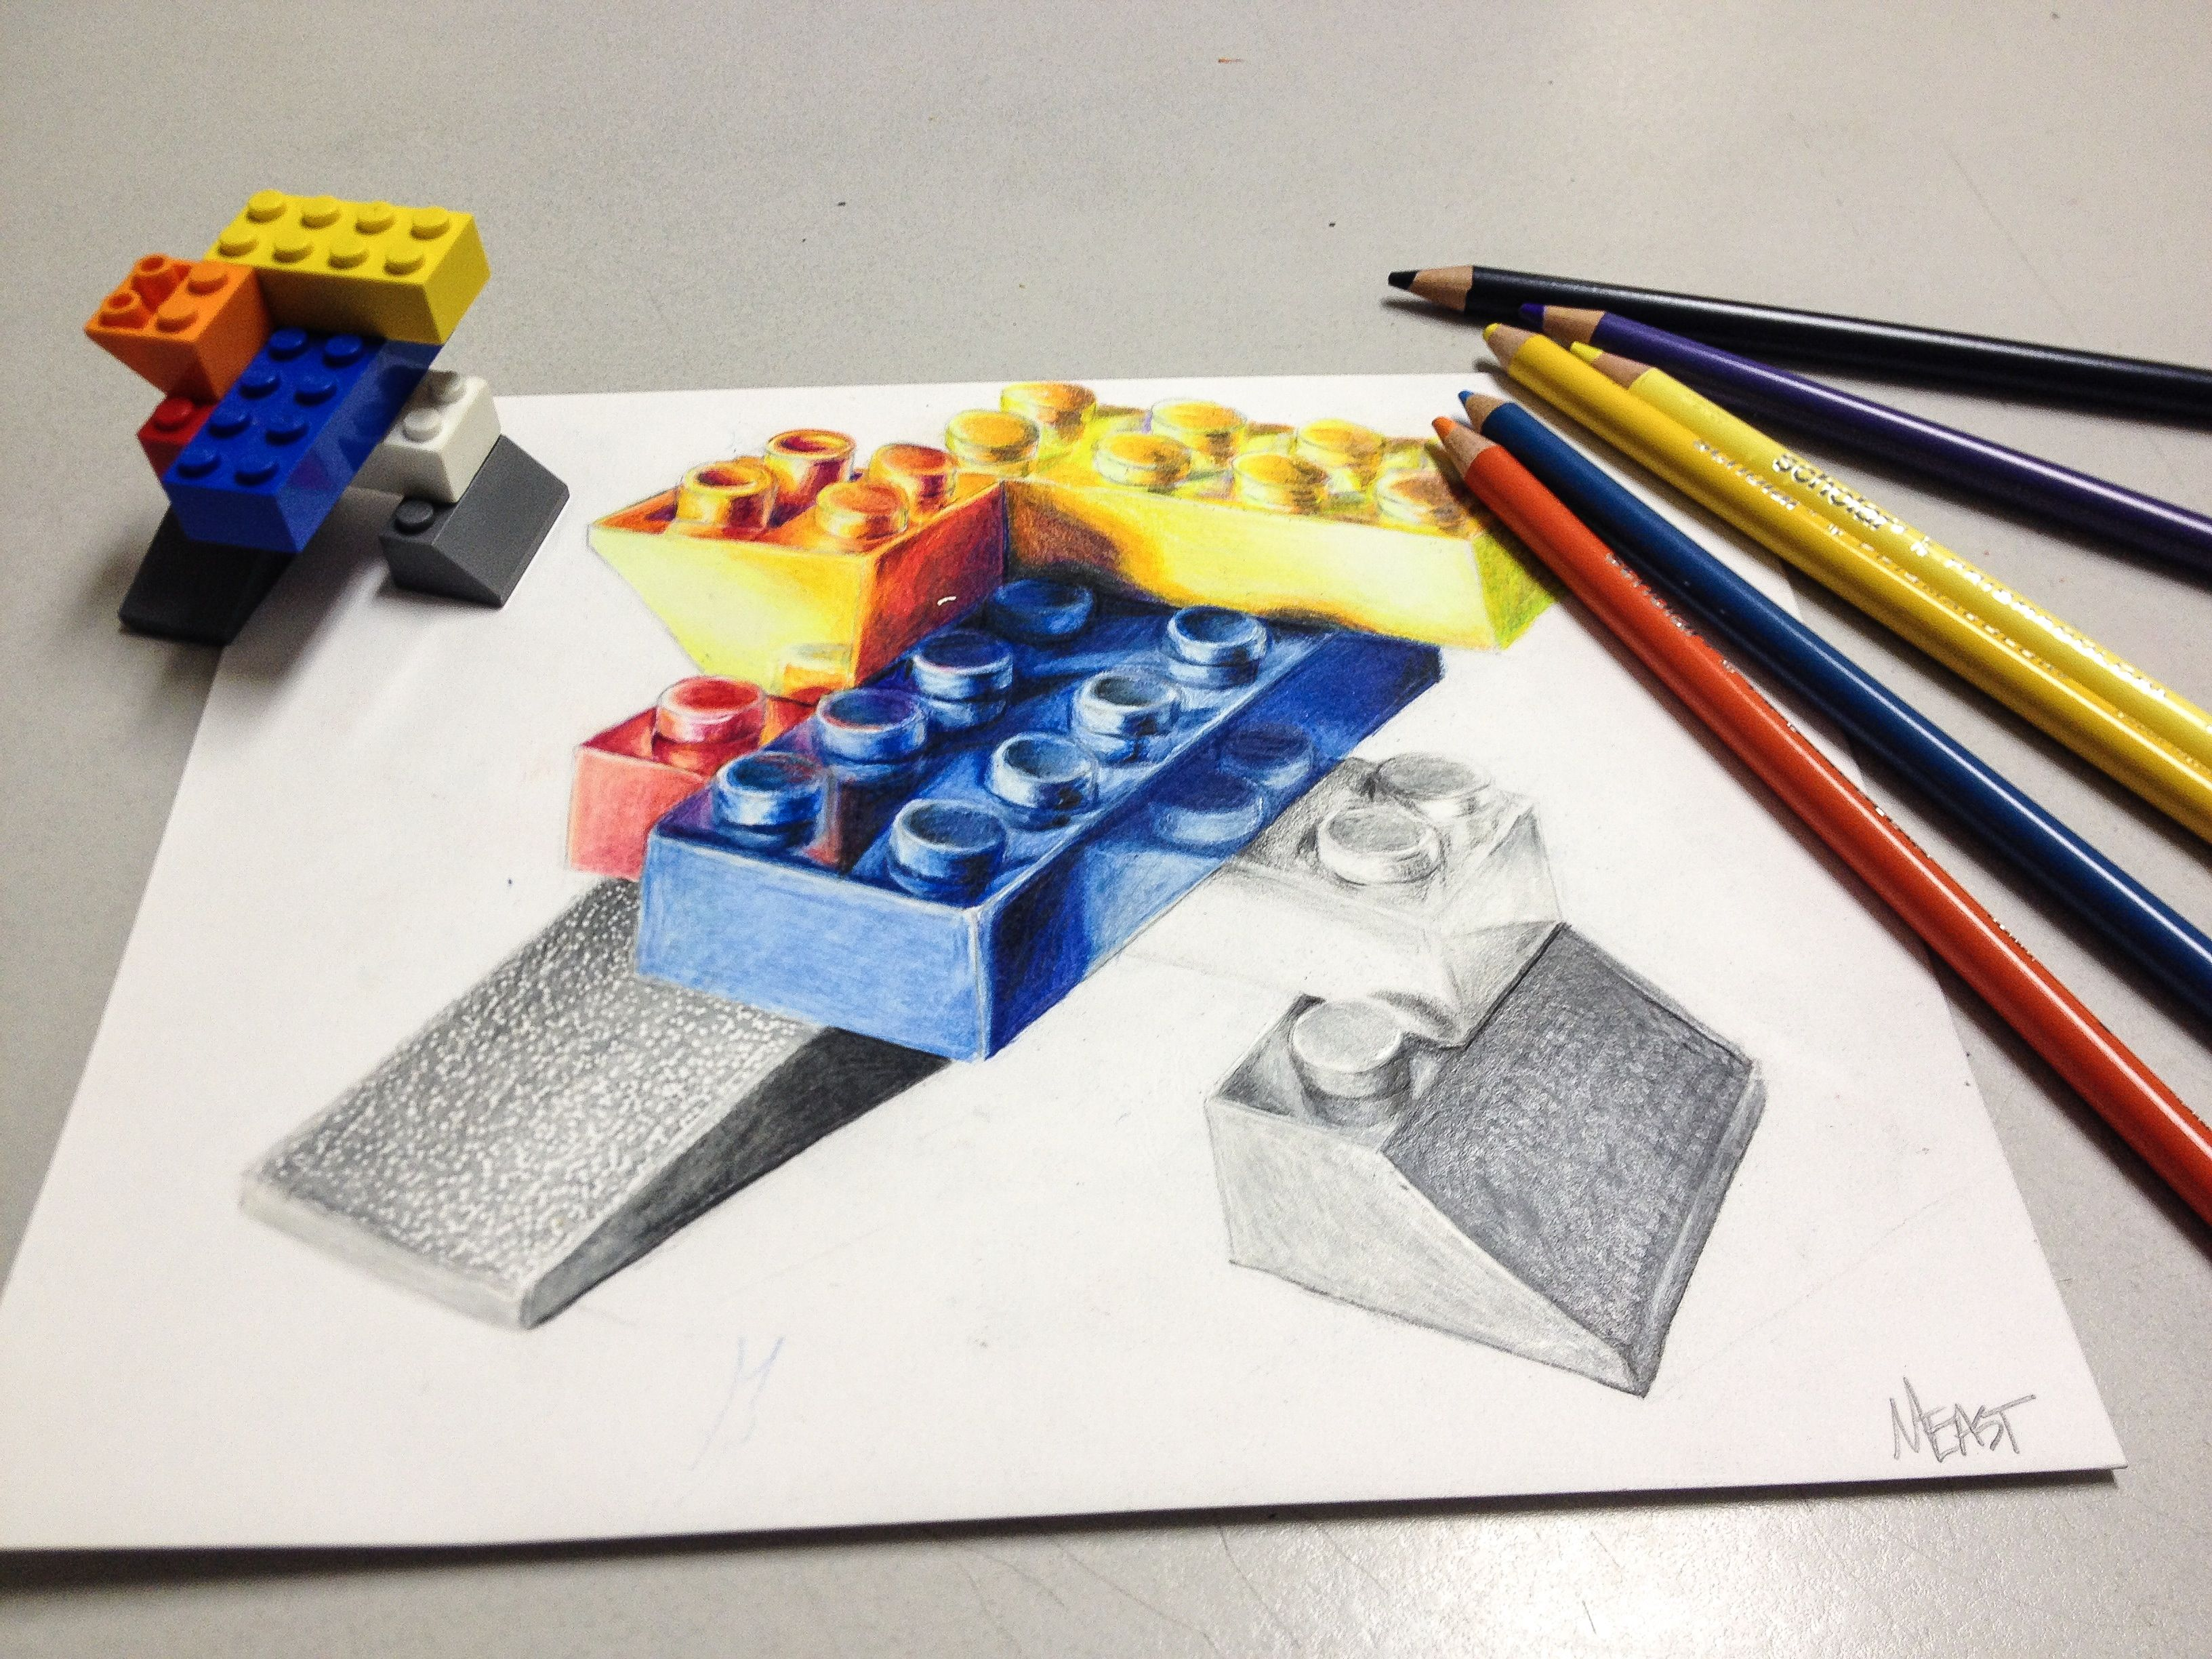 Lego duplo animals at barn coloring pages batch coloring - Lego Colored Pencil Drawing Hs Art Lesson Drawing Skills 2 Point Perspective Like The Pencil And Color Pencil Variation